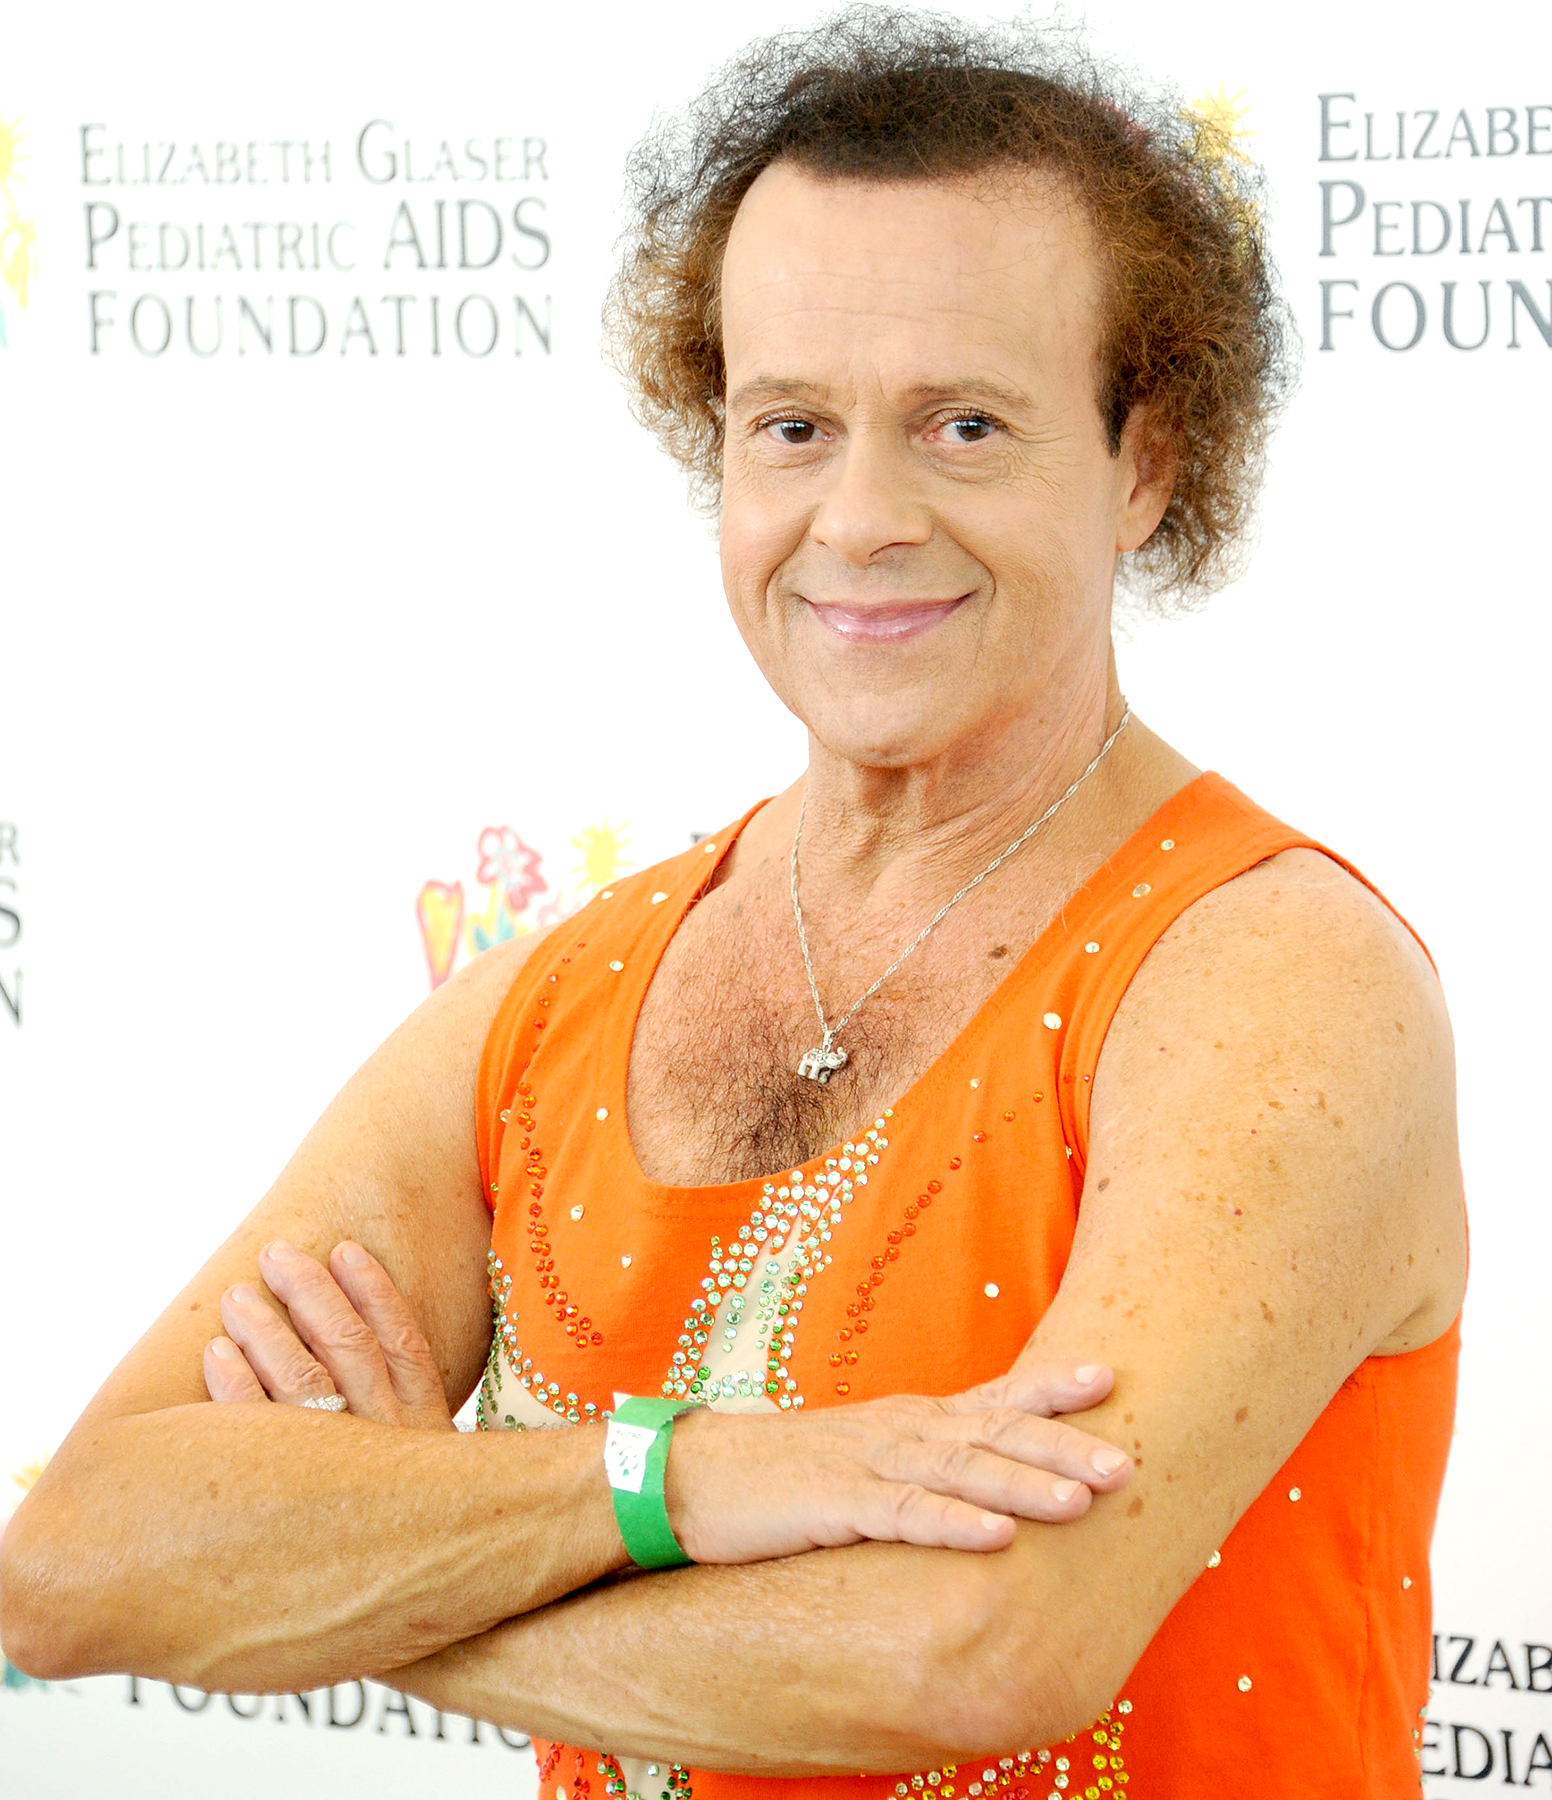 Richard Simmons arrives at the Elizabeth Glaser Pediatric AIDS Foundation's 24th Annual